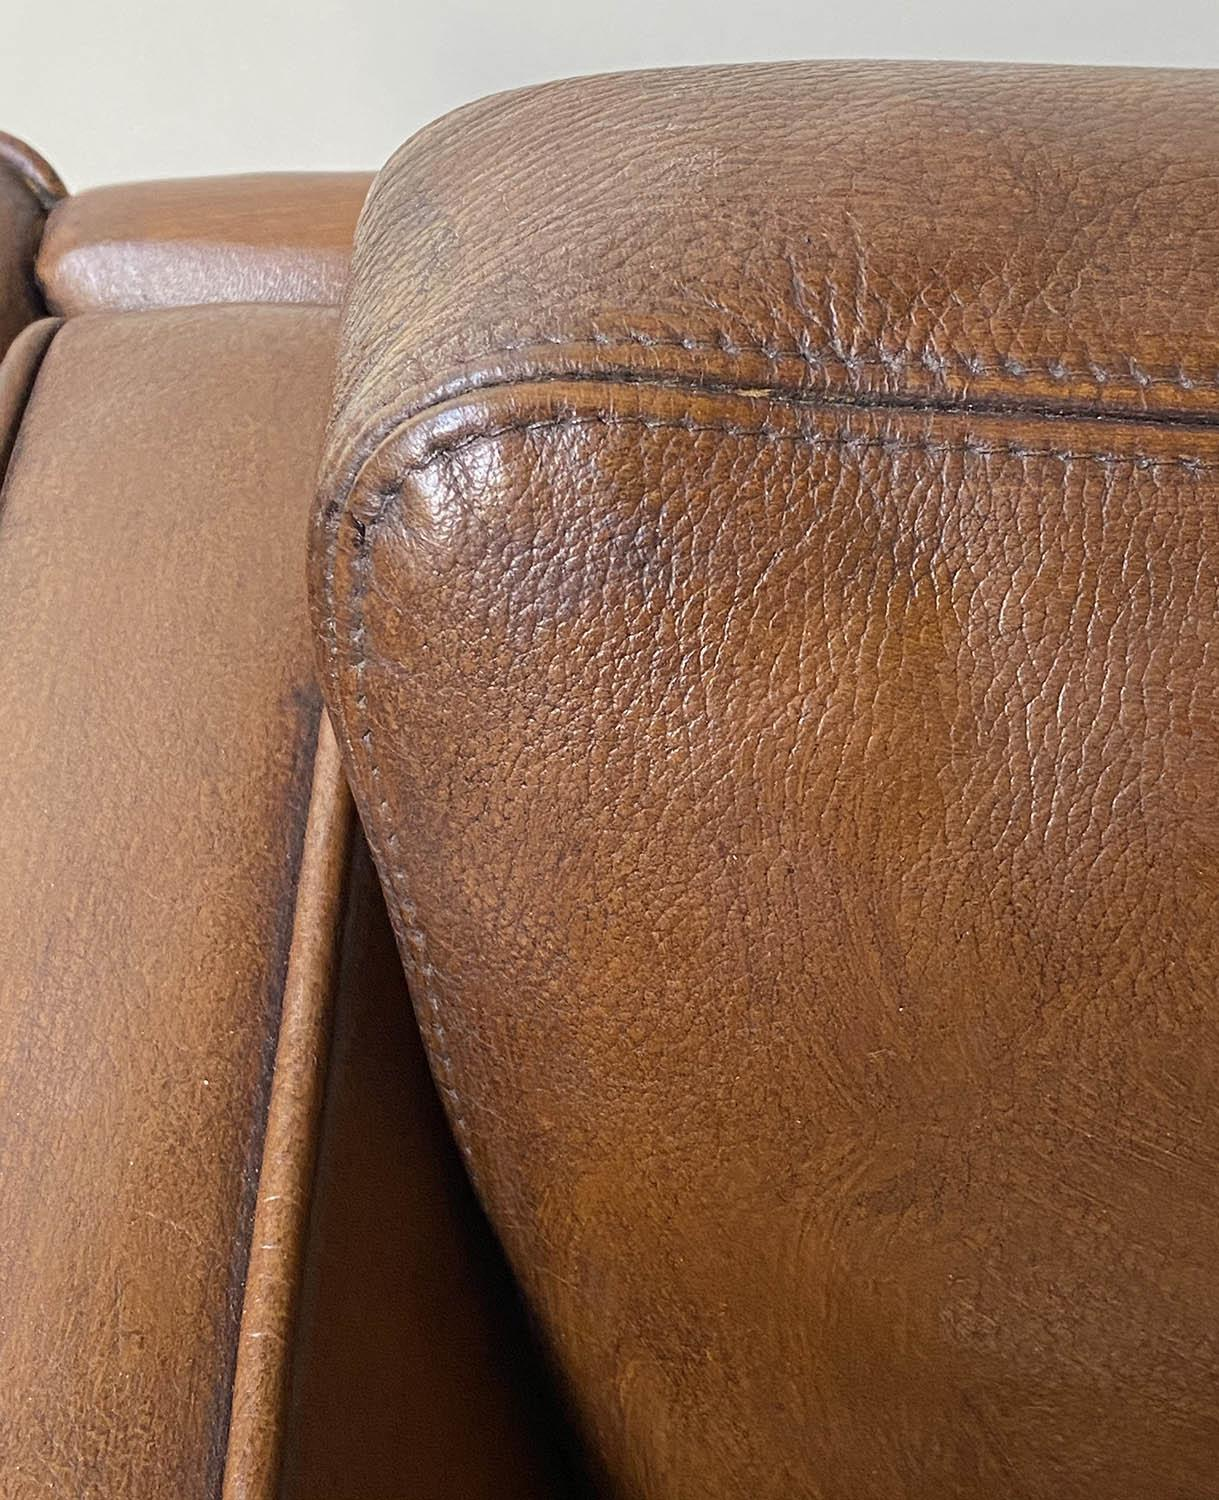 SOFA, teak, 1970's Danish style grained tan leather with two cushion seat and back, 150cm W. - Image 5 of 5